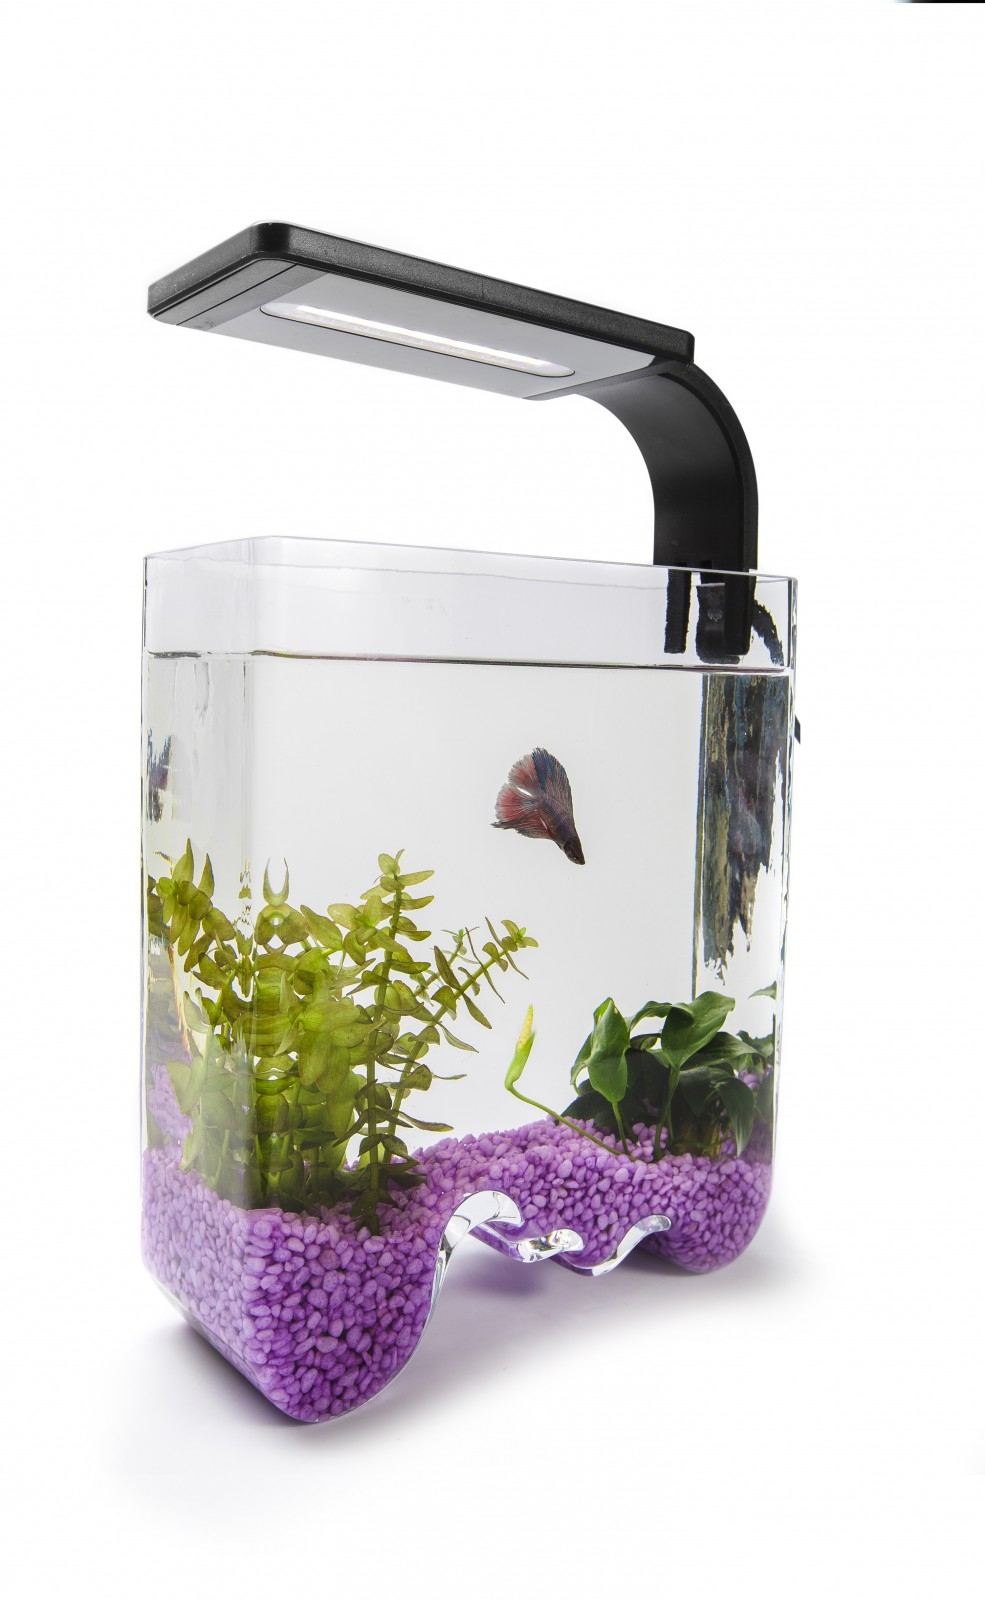 Аквариум Aquael Aqua Decoris Welle 3,5 л - 1